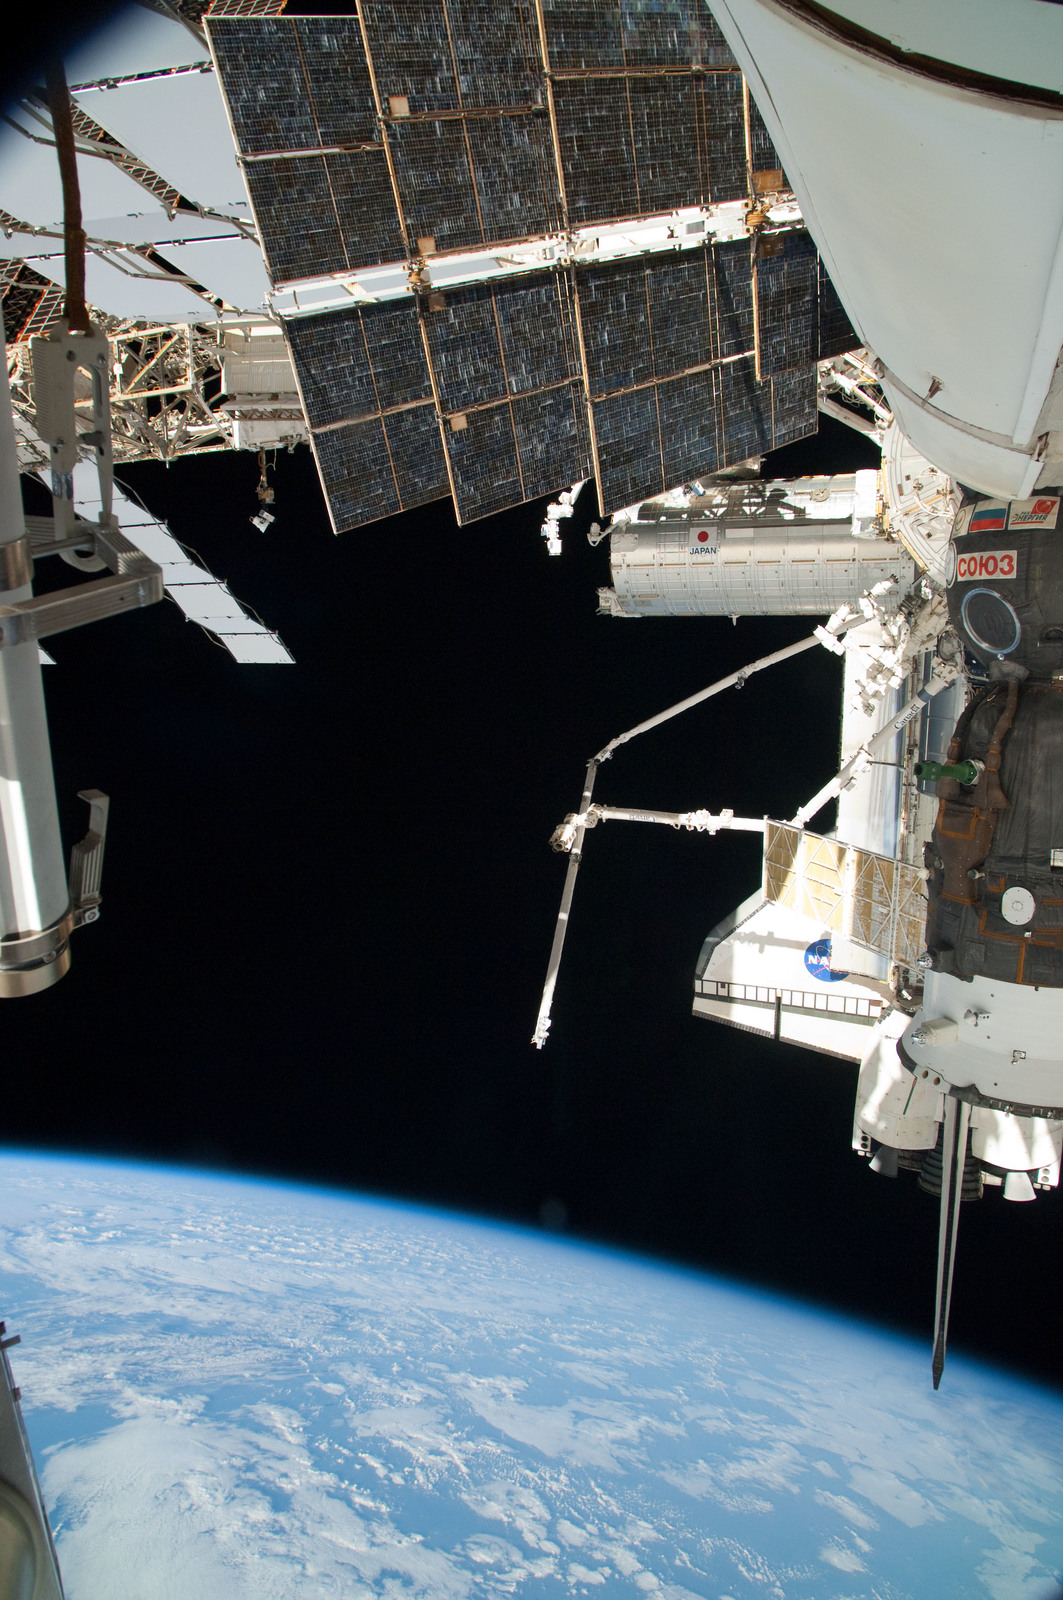 S126E025054 - STS-126 - View of ISS, Docked Soyuz and Endeavour